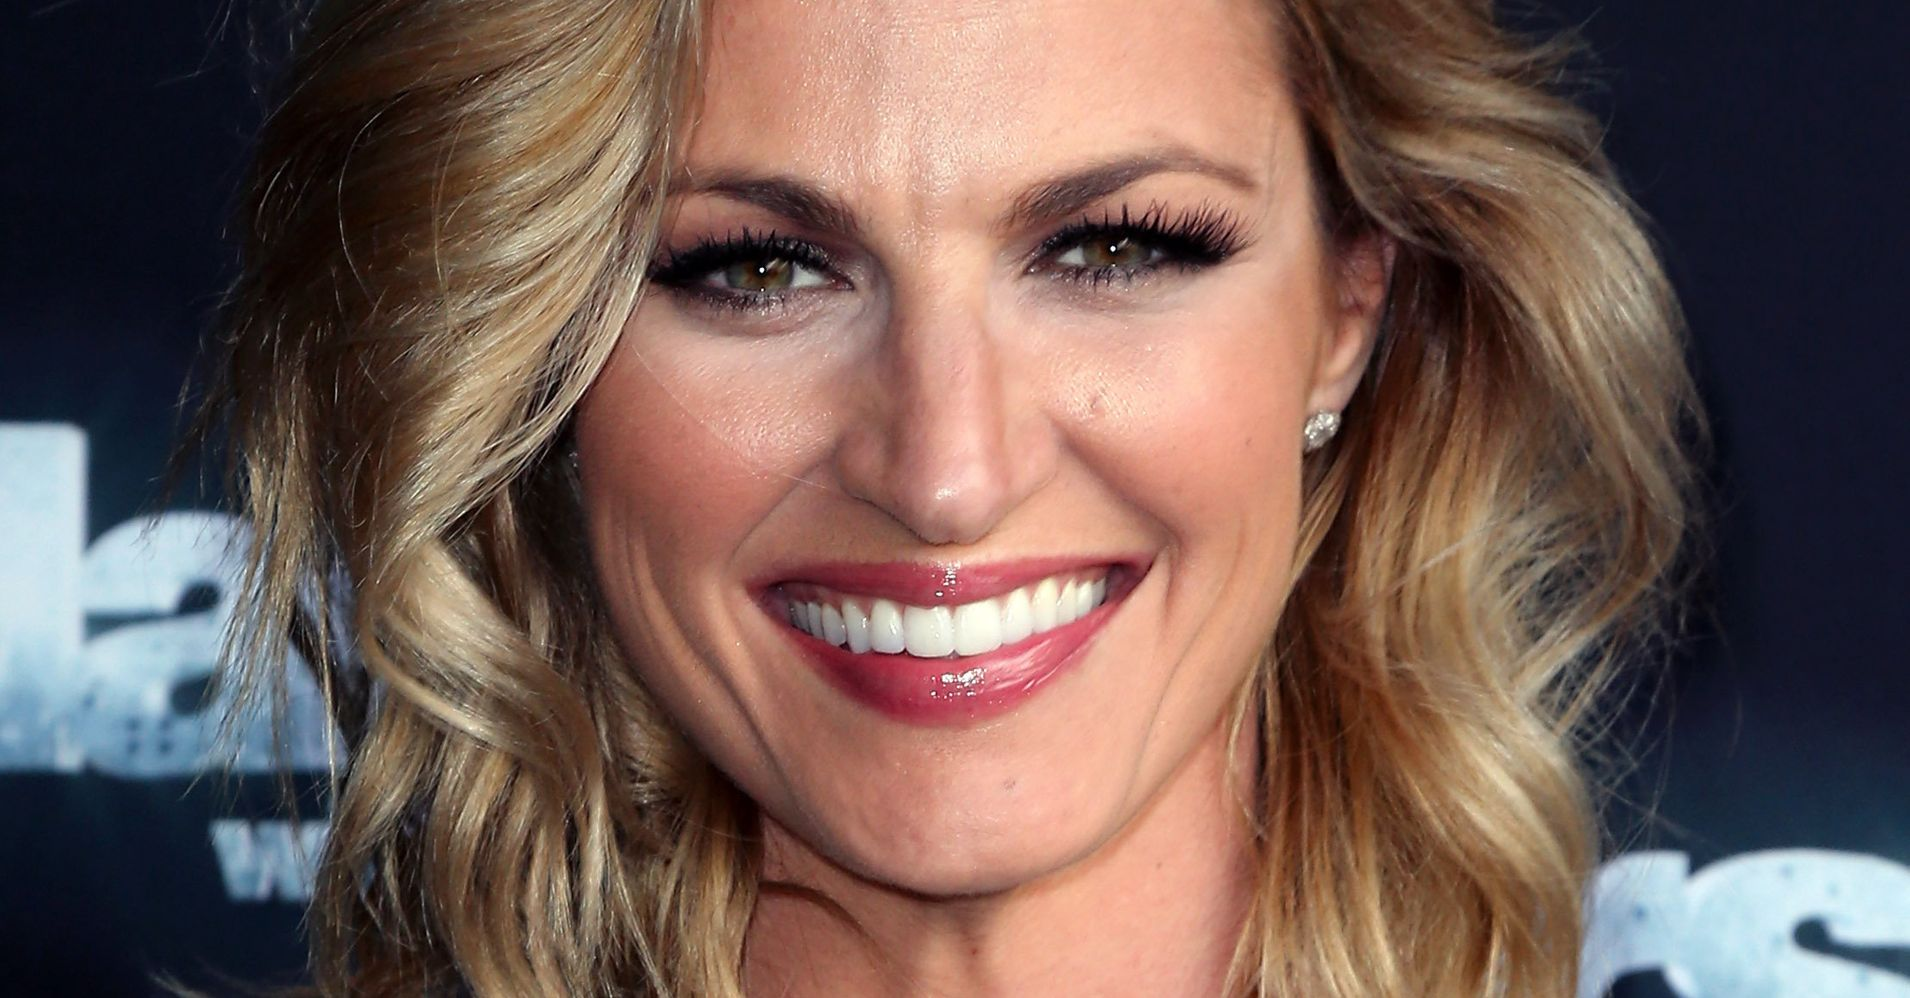 Erin Andrews is seeking $75 million in damages from her